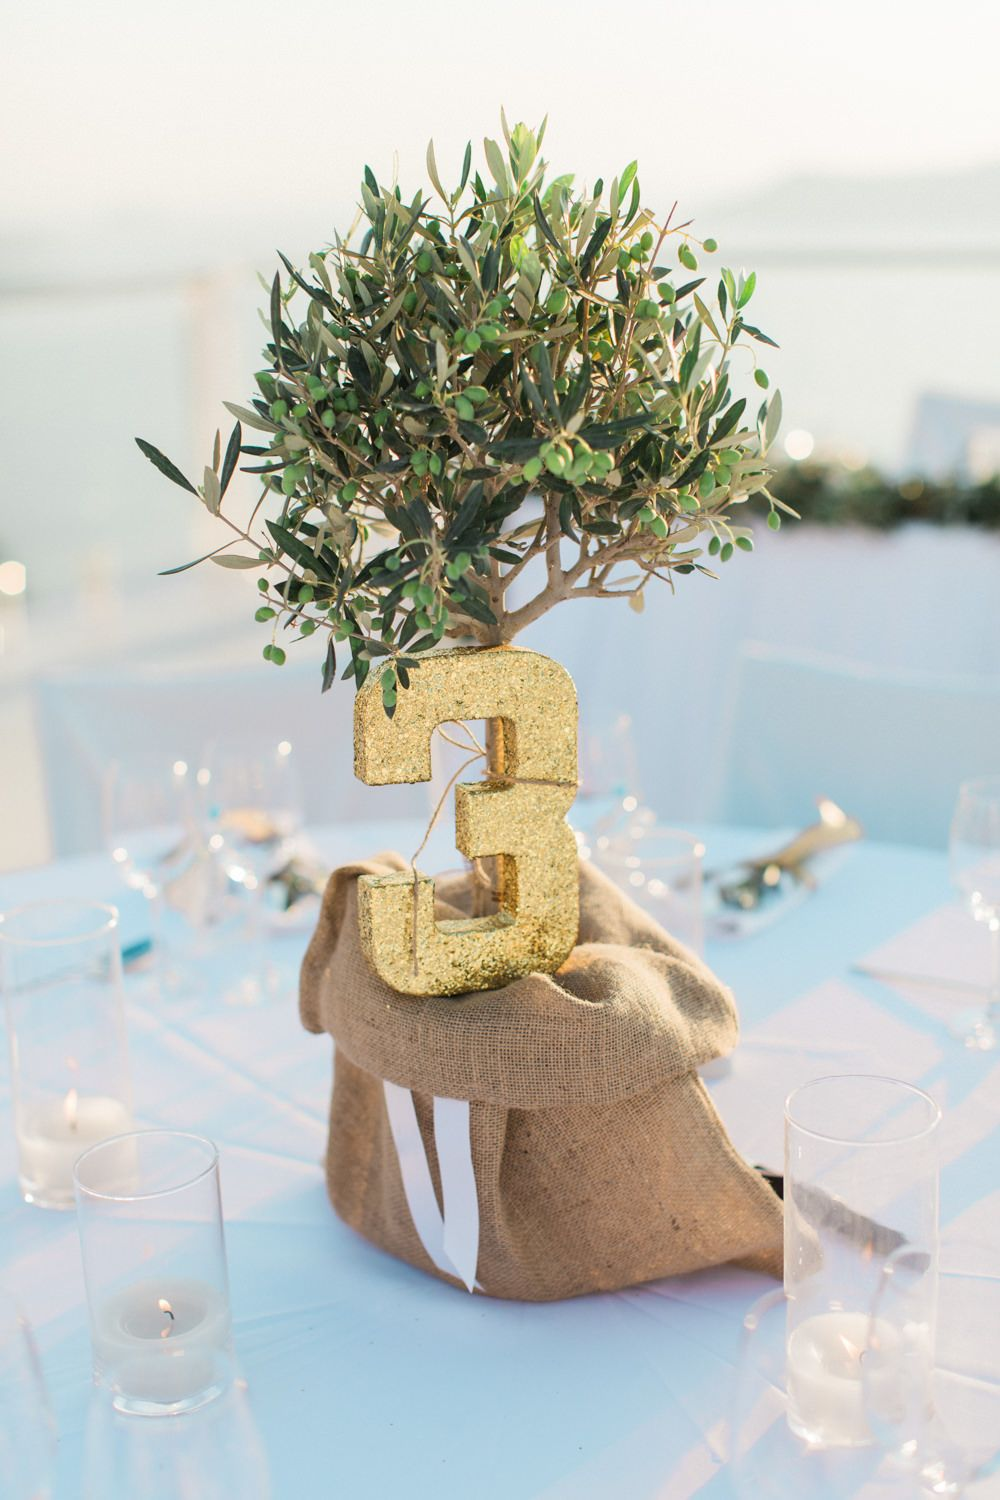 Elegant Santorini Wedding At Rocabella Hotel With Olive Tree Decor Jesús Peiró Dress